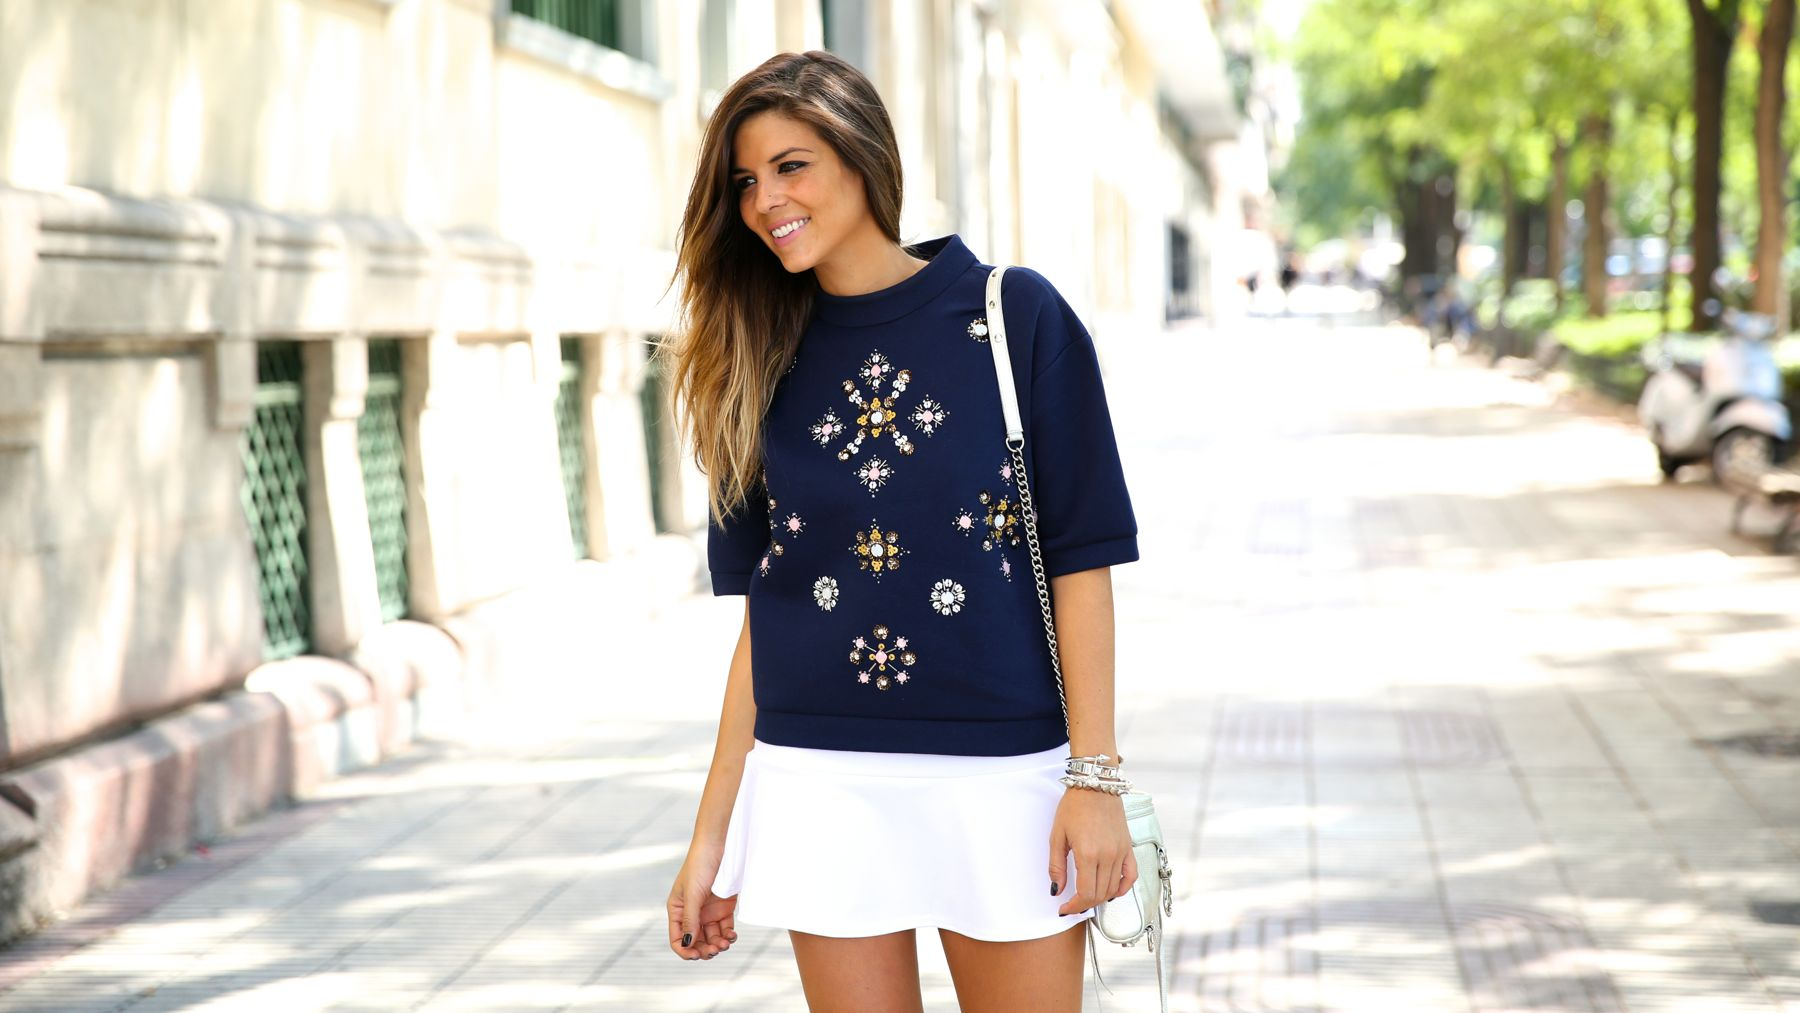 trendy_taste-look-outfit-street_style-ootd-blog-blogger-fashion_spain-moda_españa-sport_chic-isabel_marant-botines-booties-sudadera-pedrería-sweater-falda-skirt-blue-azul-trend-tendencia-bolso_plateado-silver-bag-5